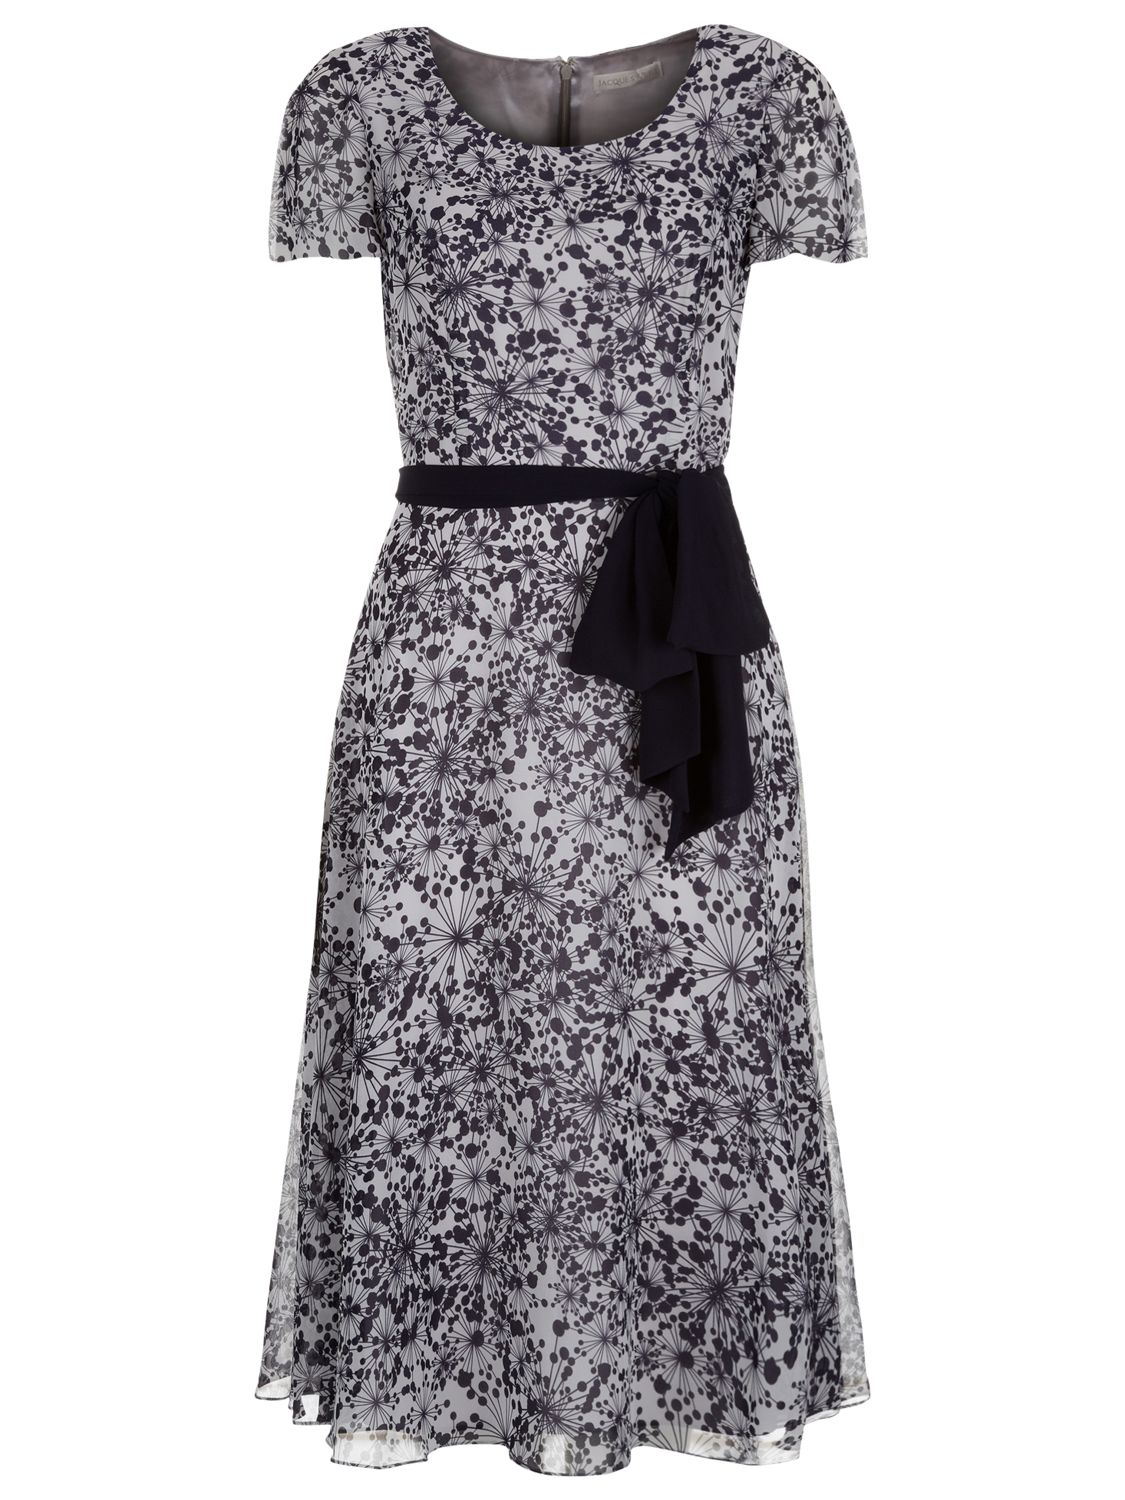 jacques vert soft spot prom dress black/white, jacques, vert, soft, spot, prom, dress, black/white, jacques vert, 14|12|8, clearance, womenswear offers, womens dresses offers, special offers, women, plus size, womens dresses, 1613379